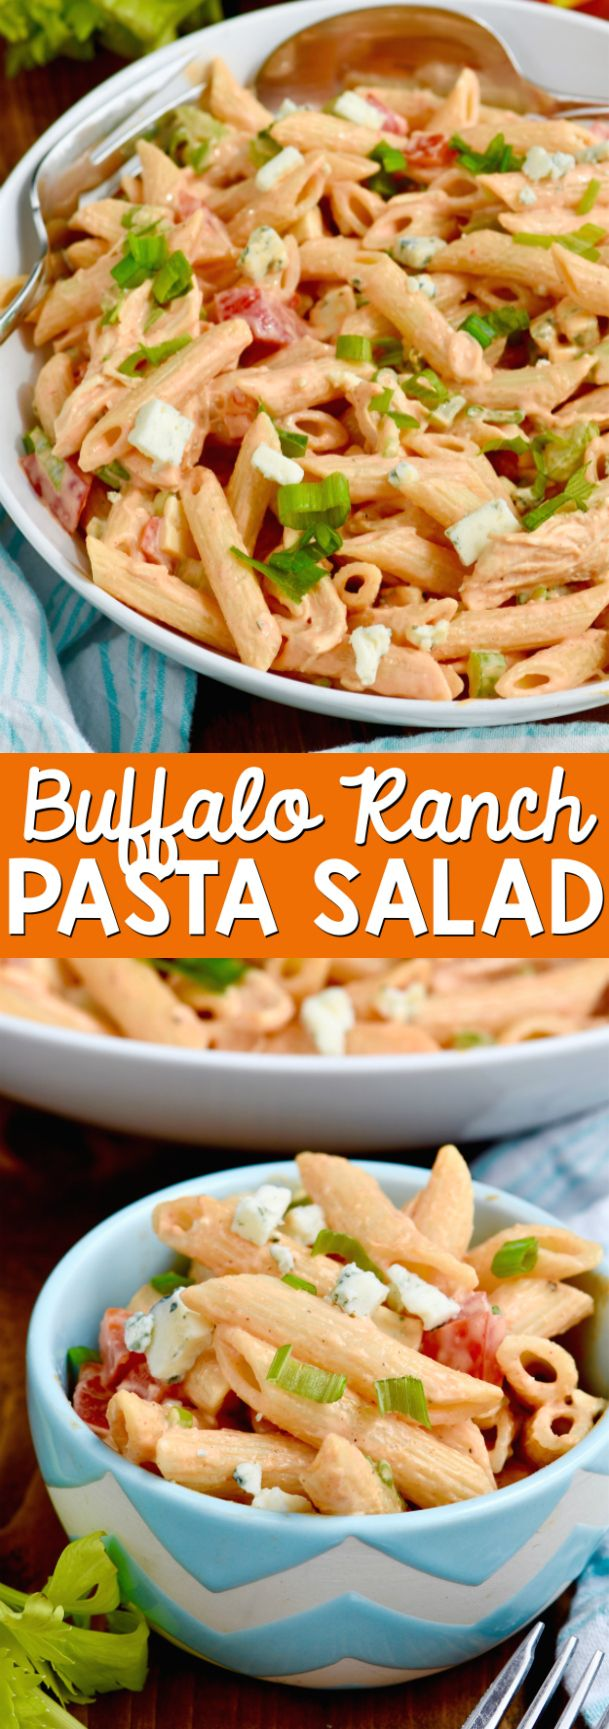 This Buffalo Ranch Pasta Salad is easy to throw together and totally delicious! Perfect for BBQs, picnics, and family gatherings!